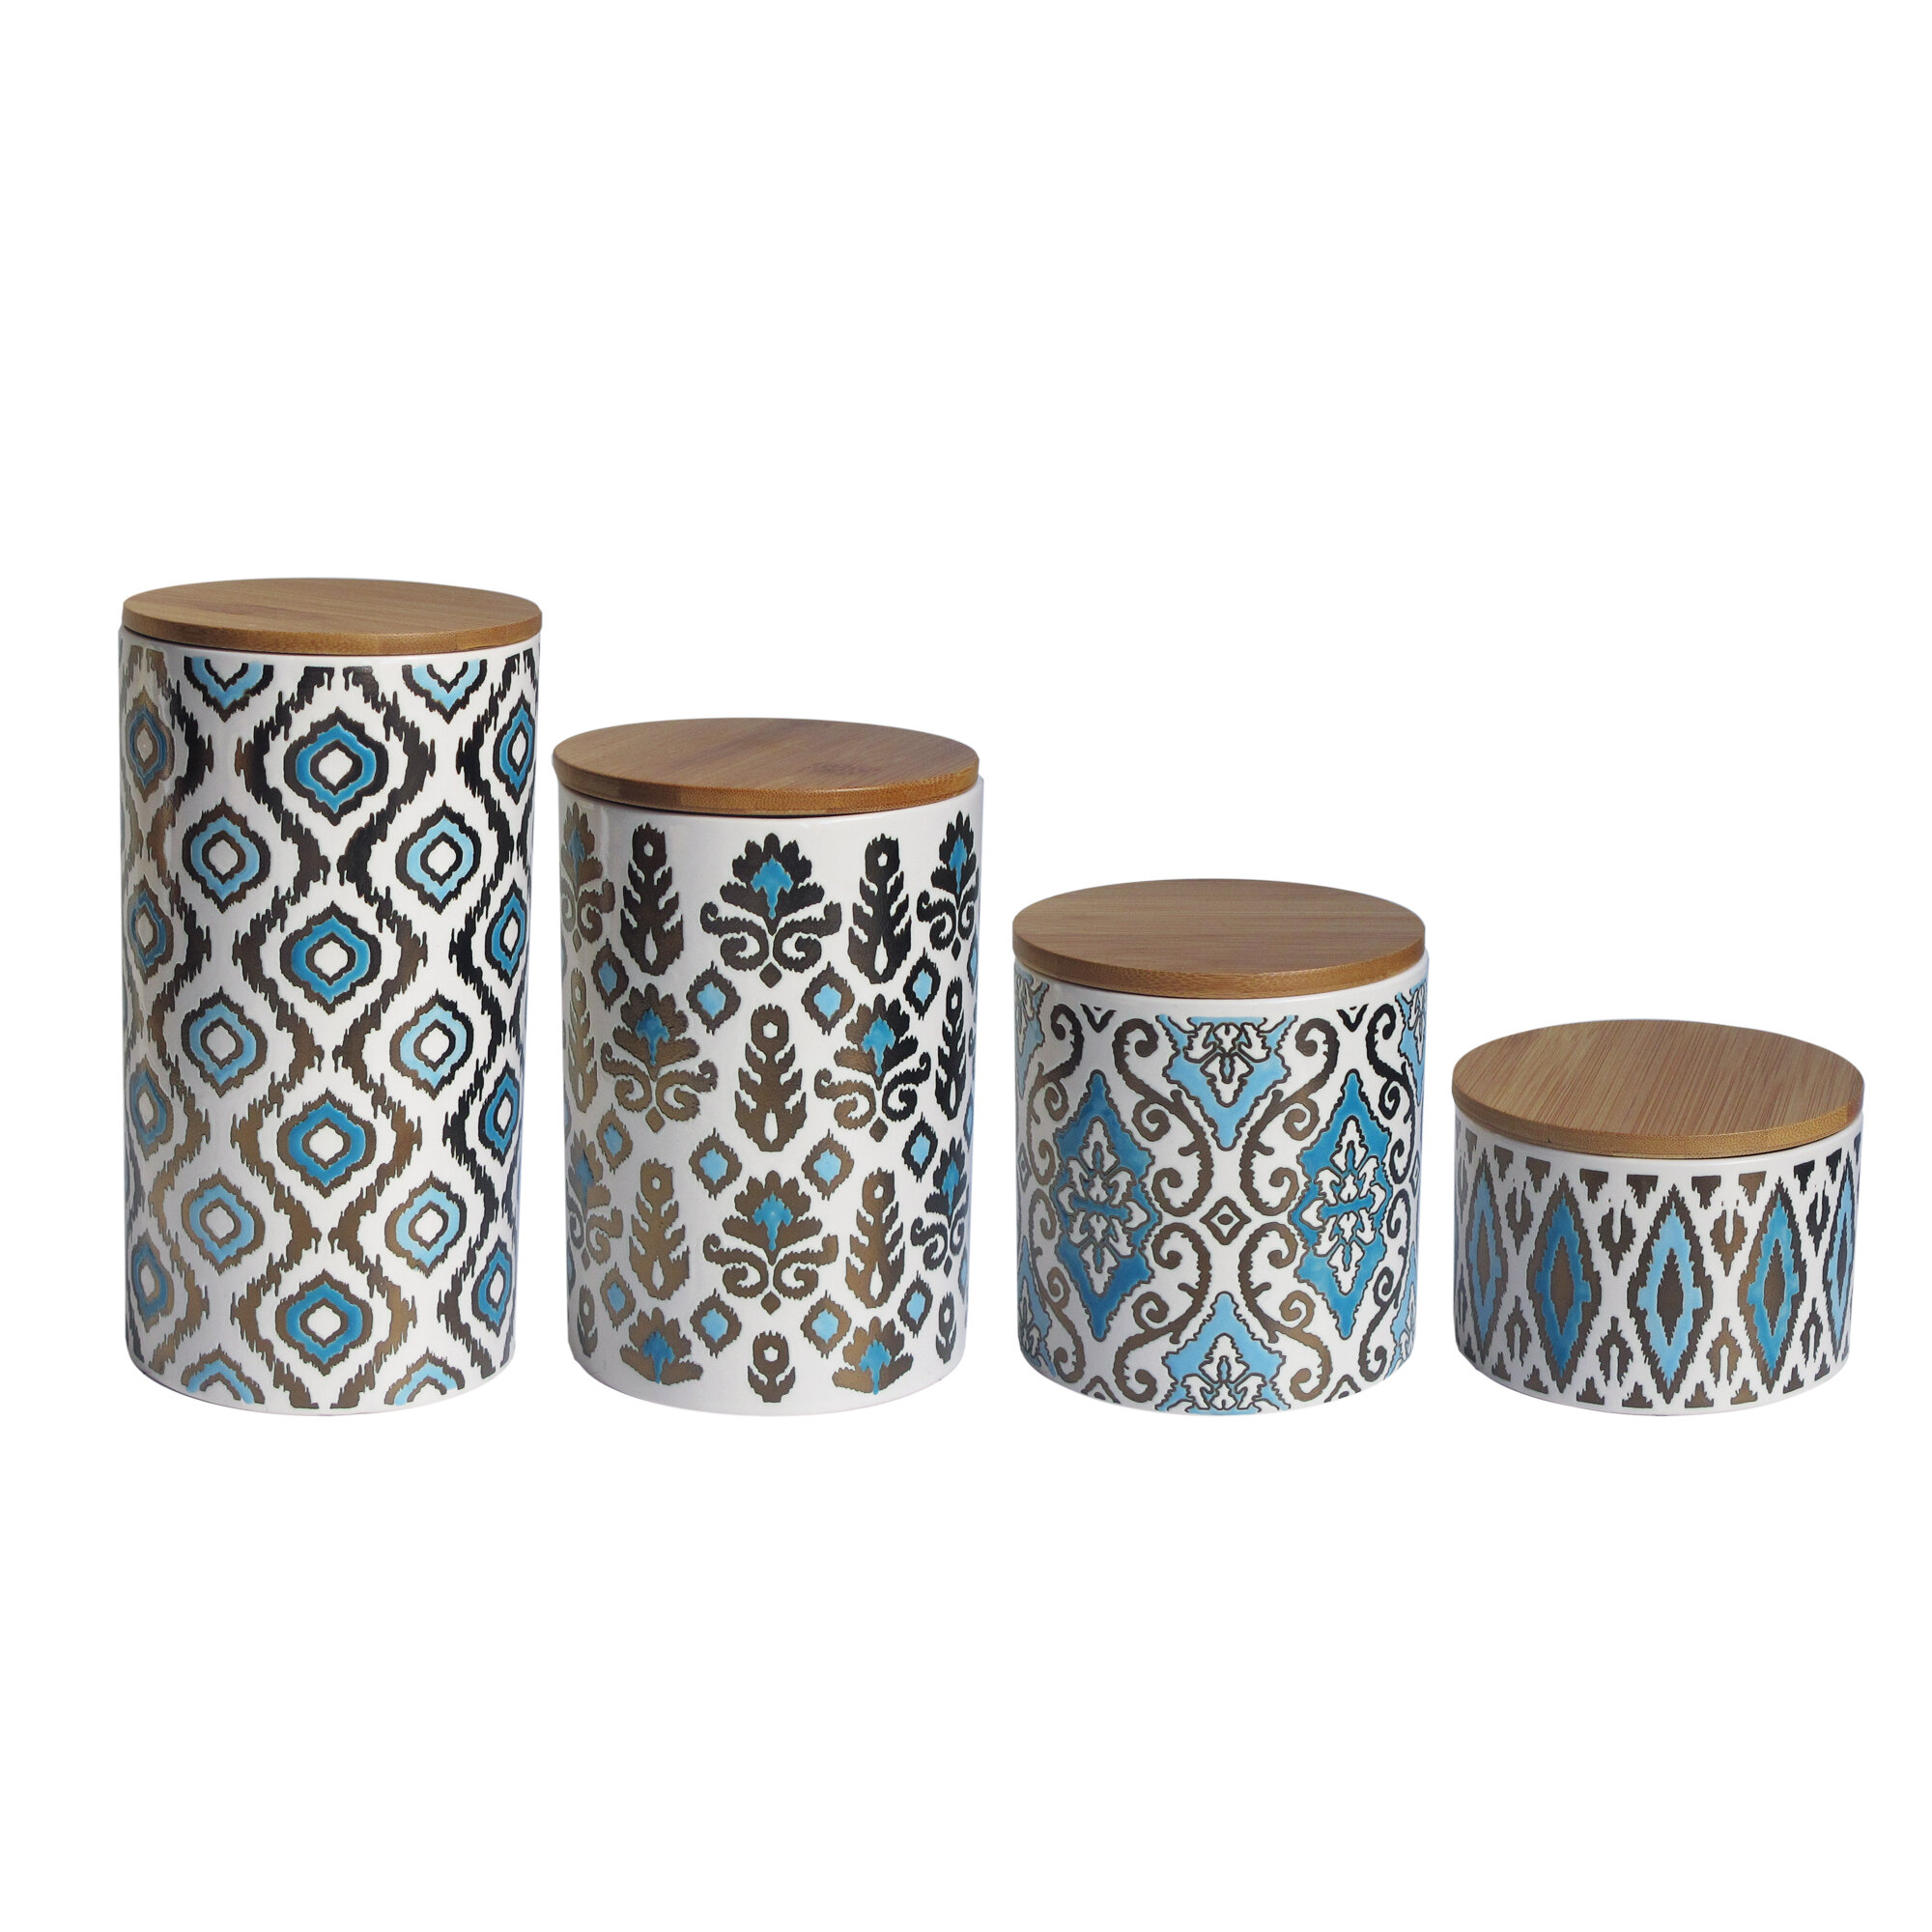 28 4 piece kitchen canister sets 4 piece canister set 4 piece kitchen canister sets american atelier weber 4 piece kitchen canister set ebay